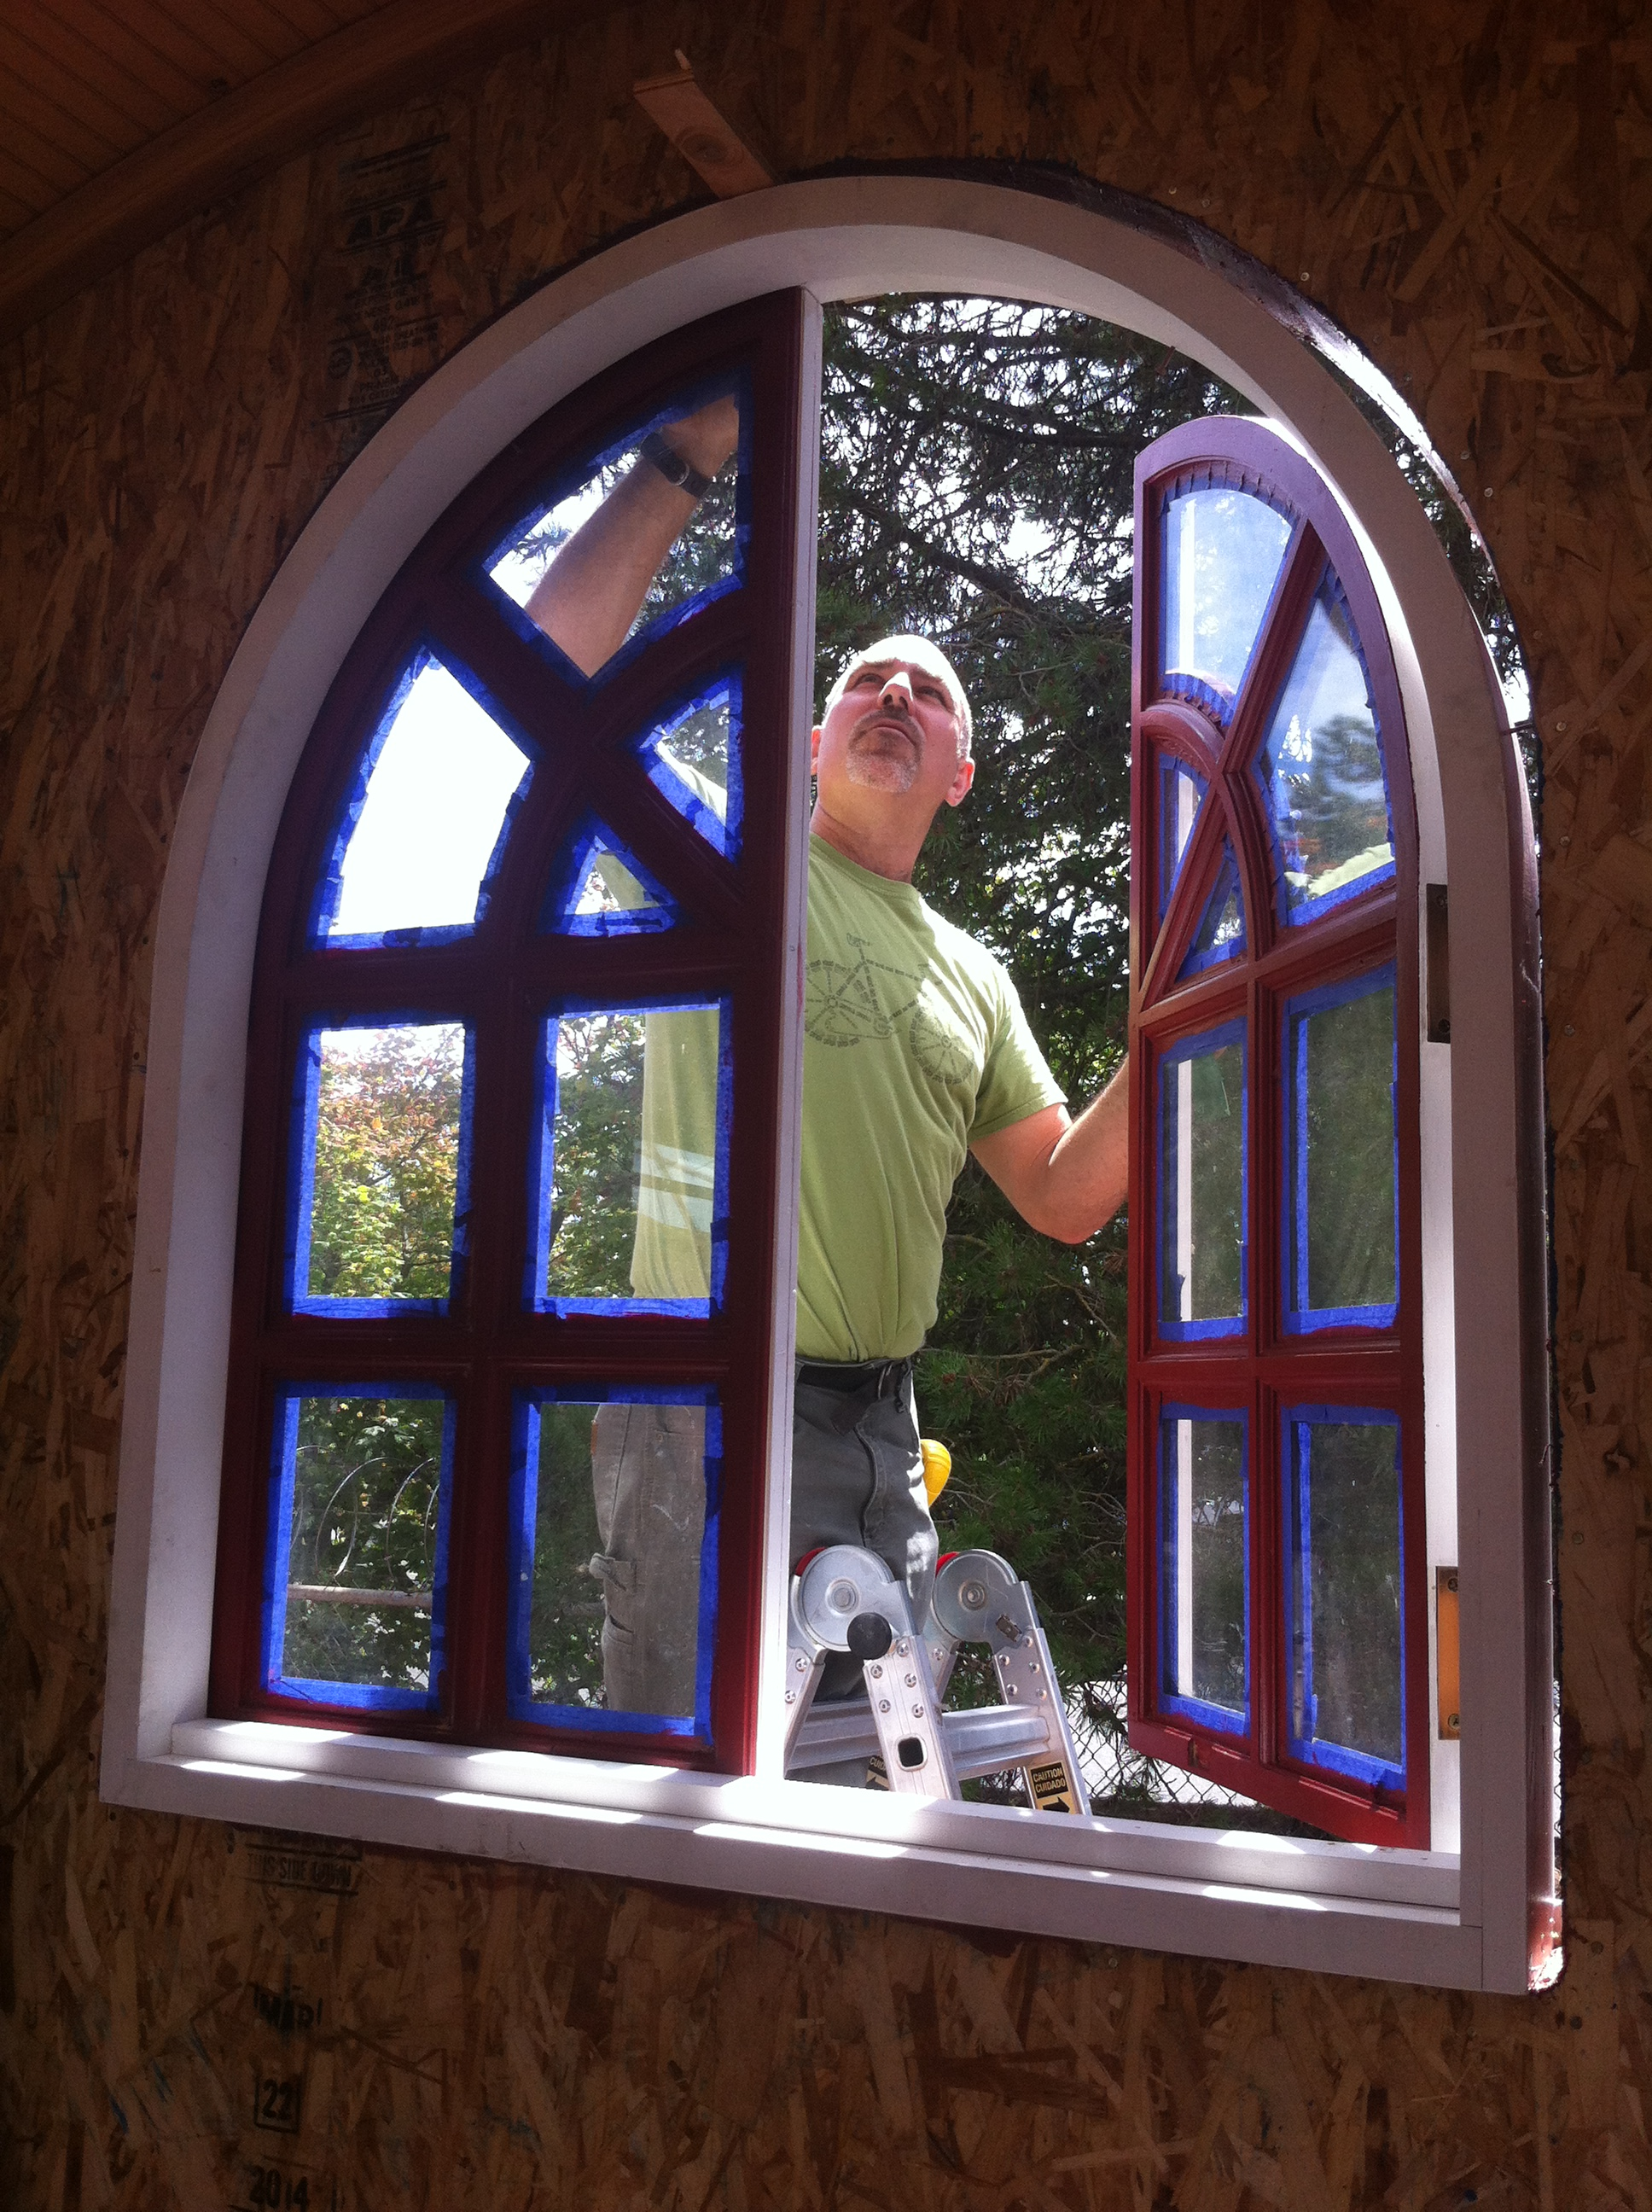 Eric-Fine-Tuning-Window.jpg